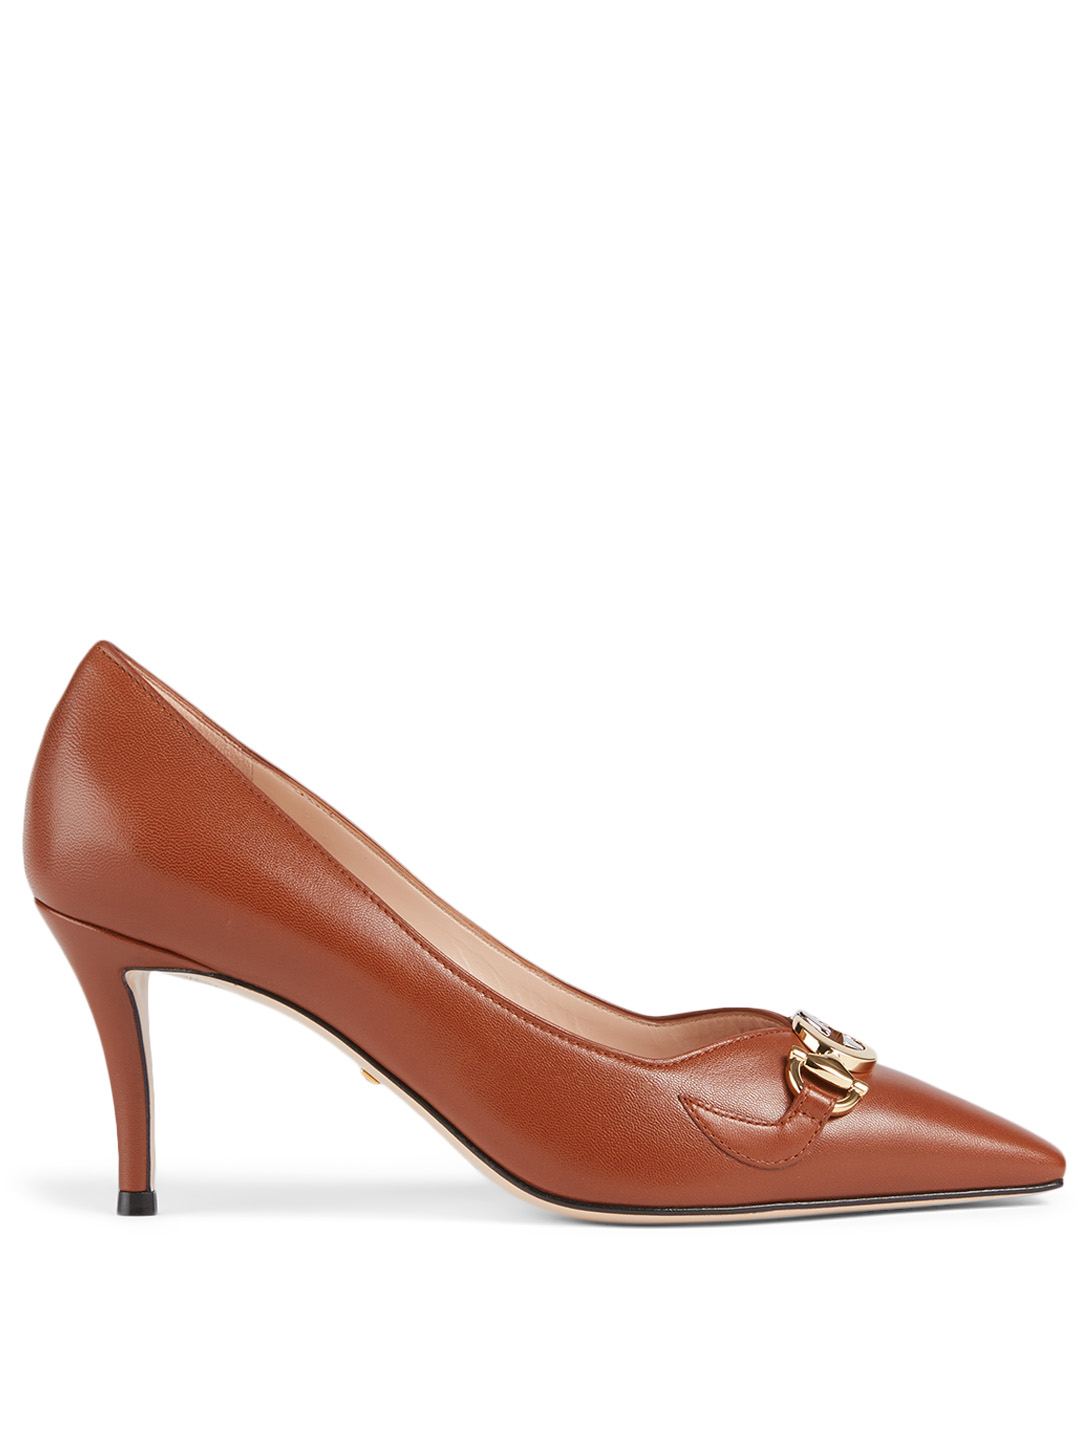 GUCCI Zumi Leather Pumps Women's Red